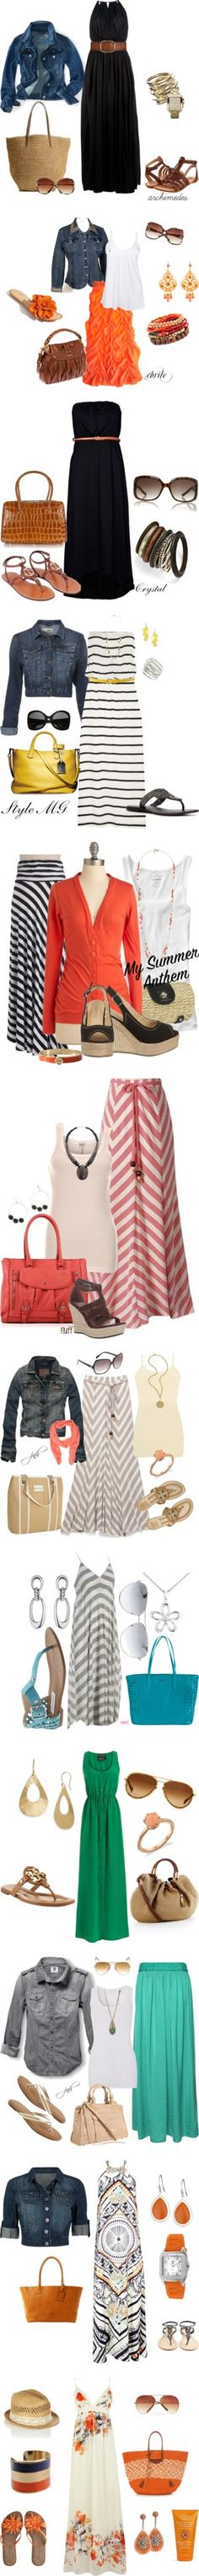 Really cute outfit ideas